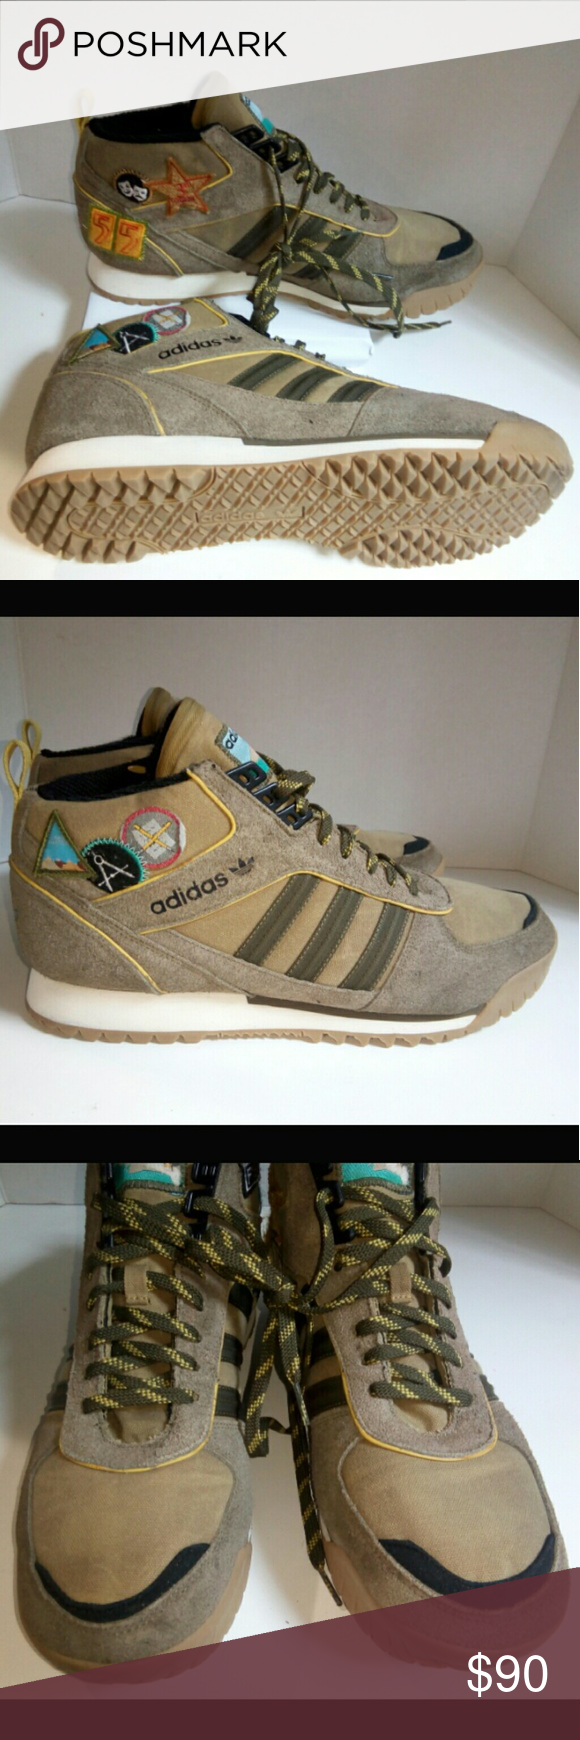 056830044 Adidas ZX TR Mid Extra Butter Field Mate 13 Shoes Adidas ZX TR Mid Extra  Butter